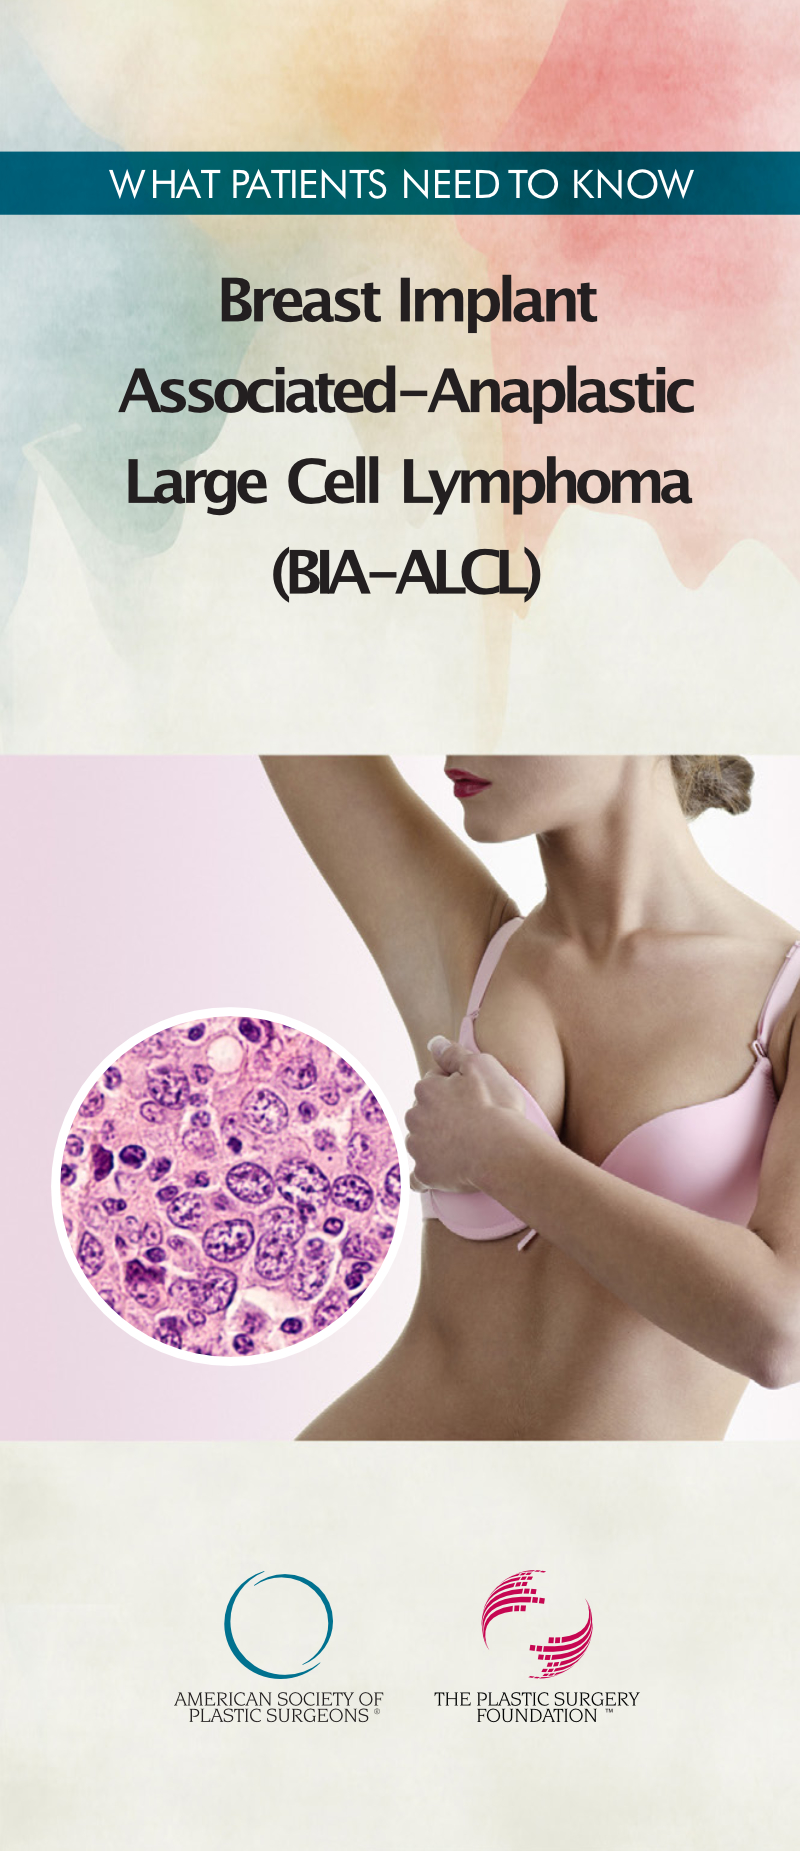 What Patients Need To Know - Breast Implant Associated-Anaplastic Large Cell Lymphoma (BIA-ALCL) DL Leaflet